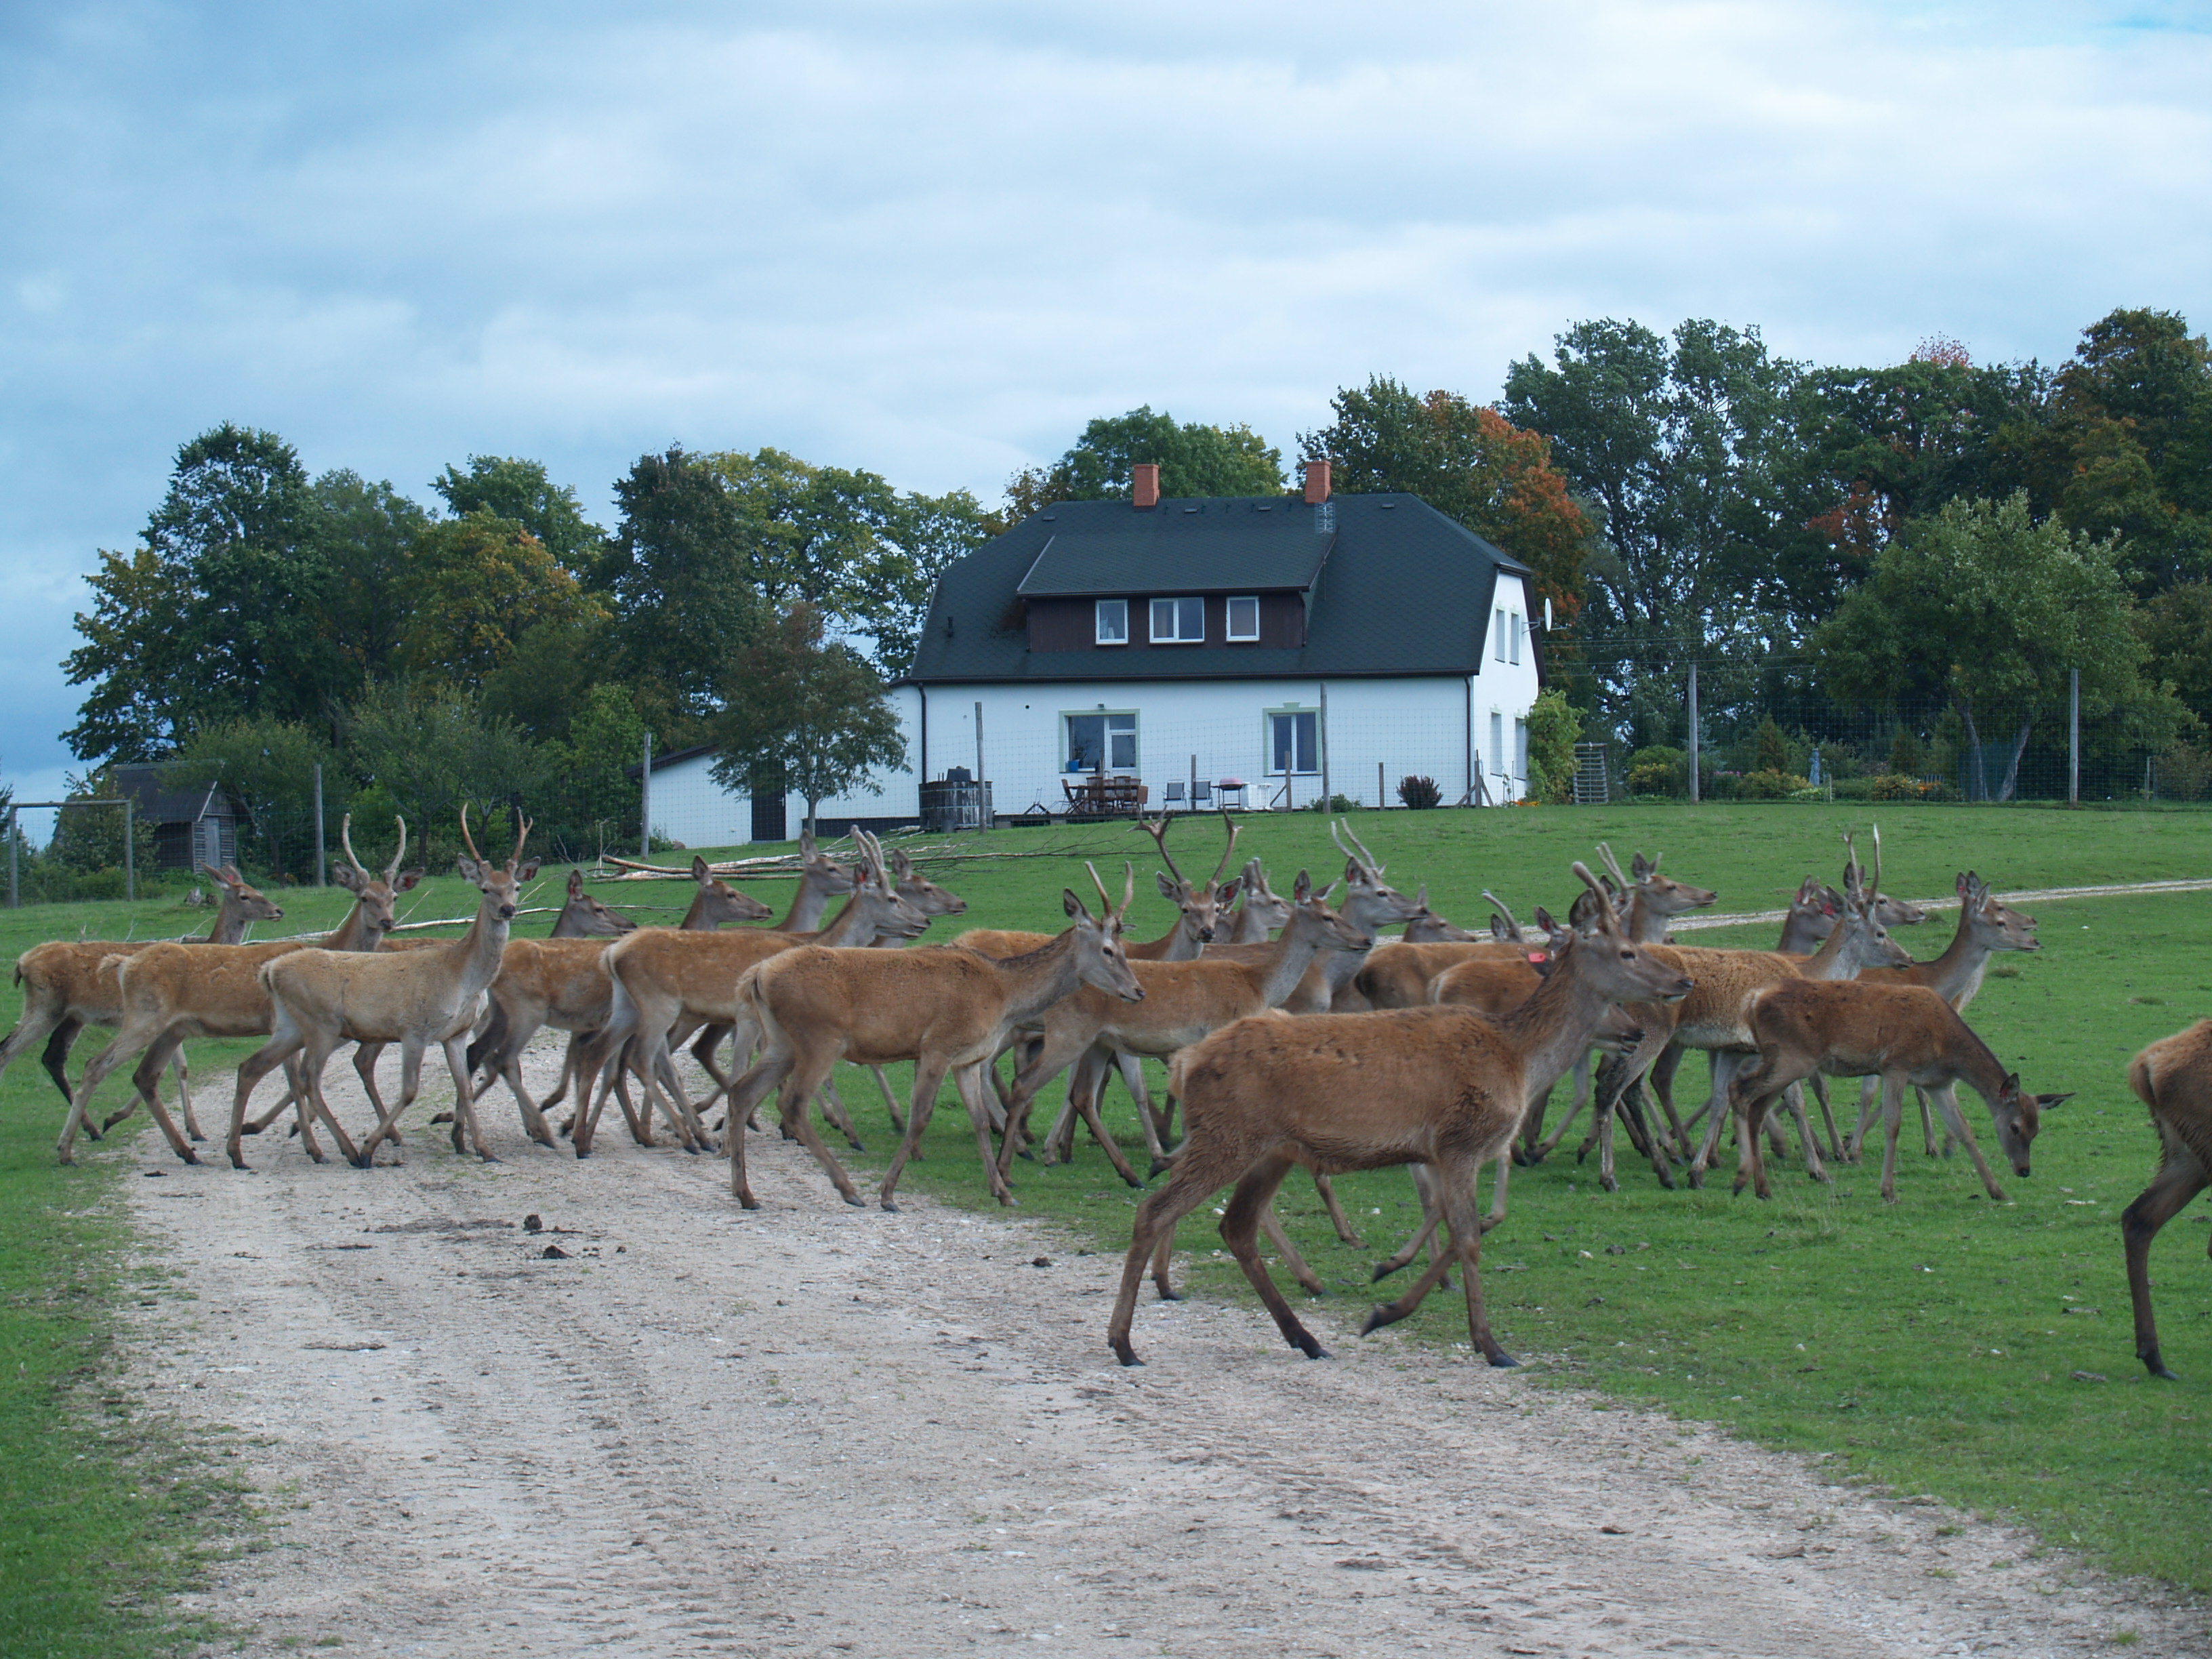 The Biotechnology and the Scientific Institute of Veterinary Medicine in co-operation partner The Deers Garden